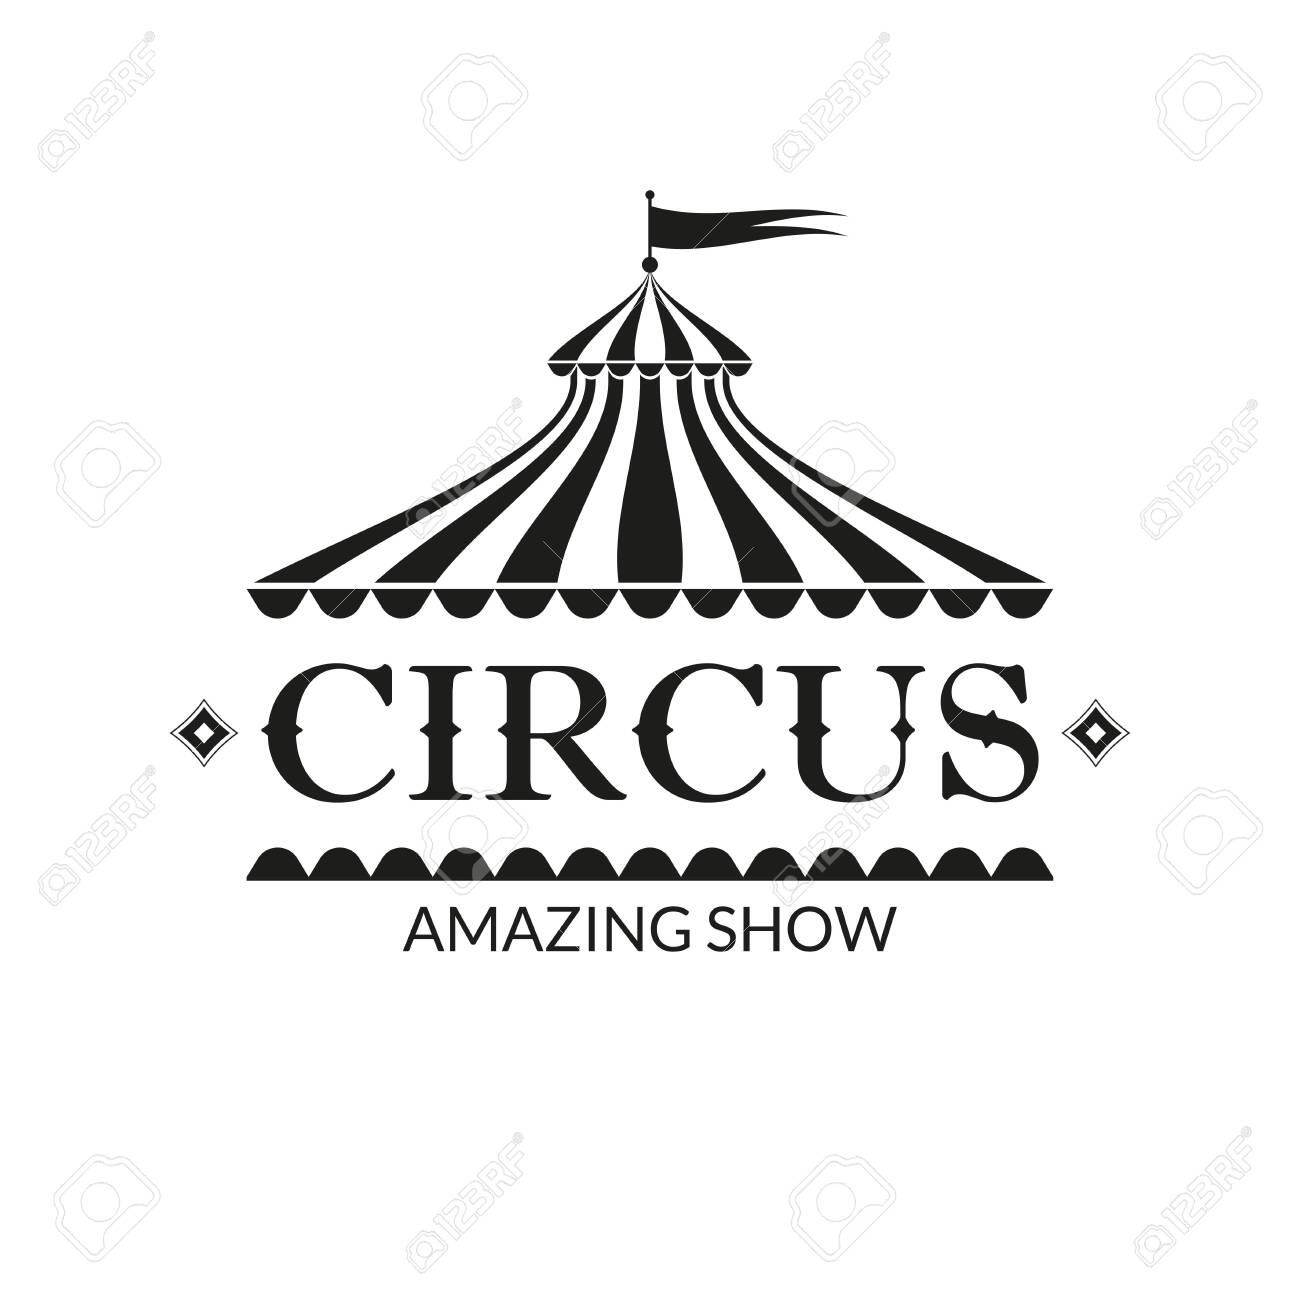 Circus badge or label with circus tent. Carnival poster or banner. Amusement show design element with vintage marquee. Vector illustration. - 152775619